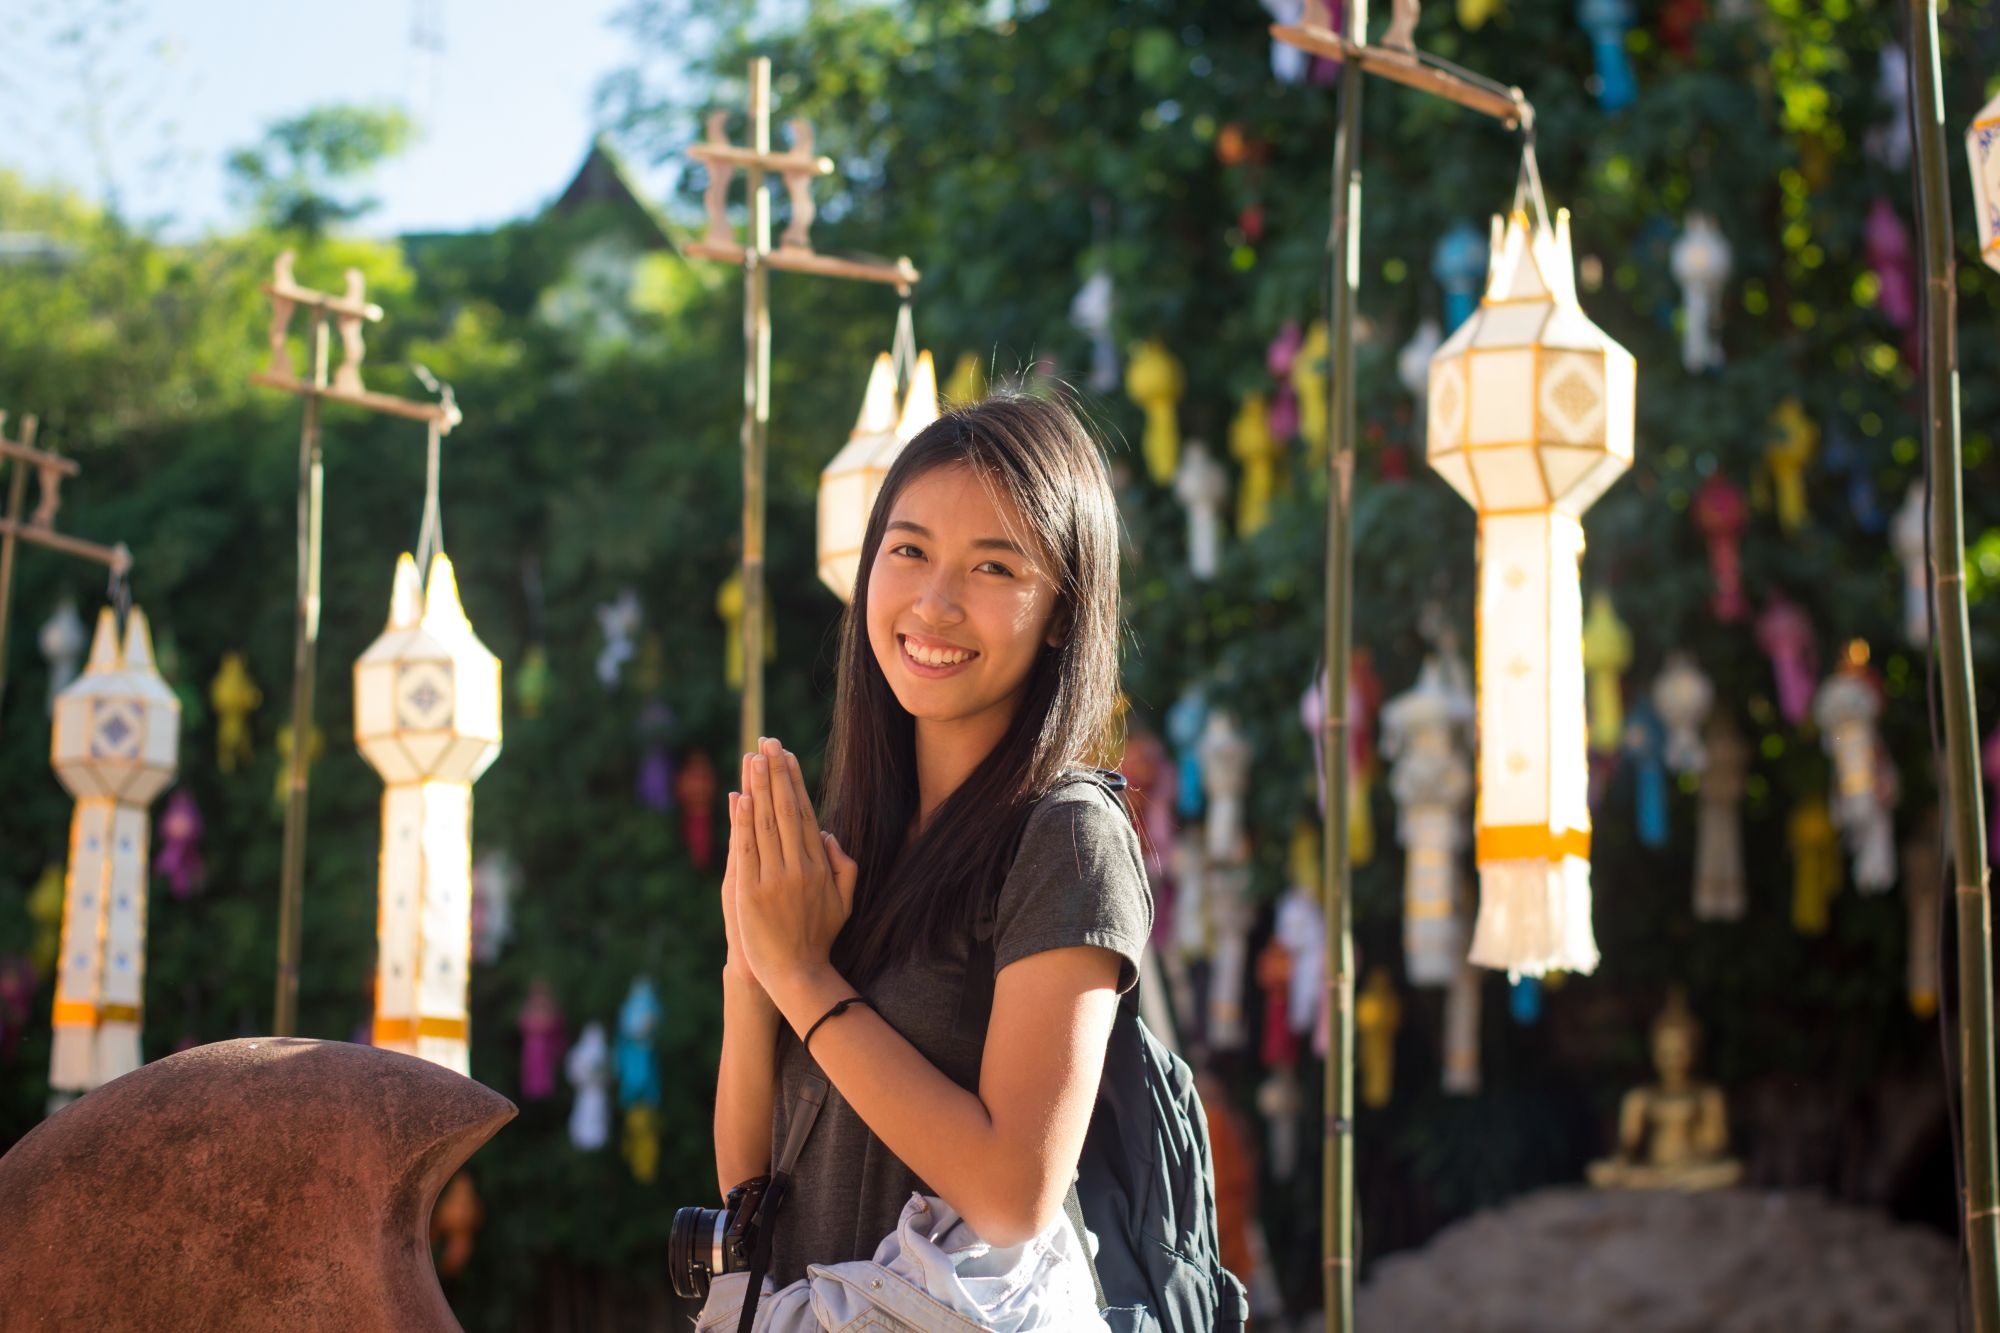 Gerelateerd blog artikel Do's en don'ts in Thailand - Tips